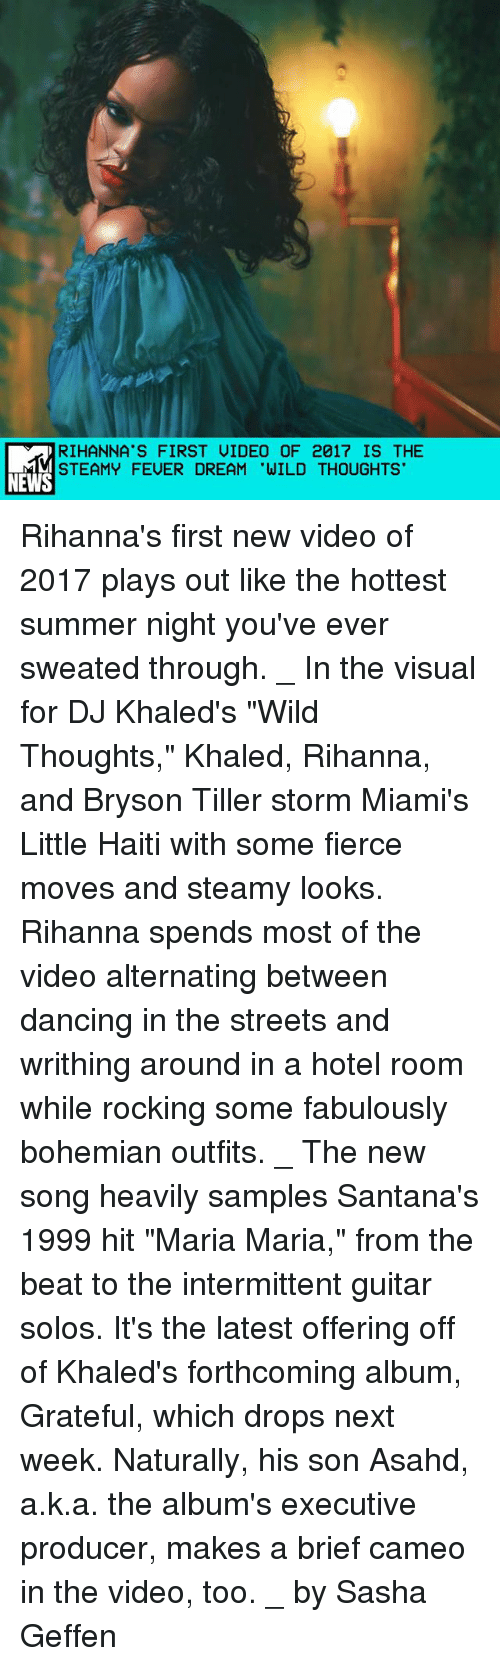 """Bryson Tiller, Dancing, and Memes: RIHANNA'S FIRST UIDEO OF 2017 IS THE  STEAMY FEUER DREAM 'WILD THOUGHTS  NEWS Rihanna's first new video of 2017 plays out like the hottest summer night you've ever sweated through. _ In the visual for DJ Khaled's """"Wild Thoughts,"""" Khaled, Rihanna, and Bryson Tiller storm Miami's Little Haiti with some fierce moves and steamy looks. Rihanna spends most of the video alternating between dancing in the streets and writhing around in a hotel room while rocking some fabulously bohemian outfits. _ The new song heavily samples Santana's 1999 hit """"Maria Maria,"""" from the beat to the intermittent guitar solos. It's the latest offering off of Khaled's forthcoming album, Grateful, which drops next week. Naturally, his son Asahd, a.k.a. the album's executive producer, makes a brief cameo in the video, too. _ by Sasha Geffen"""